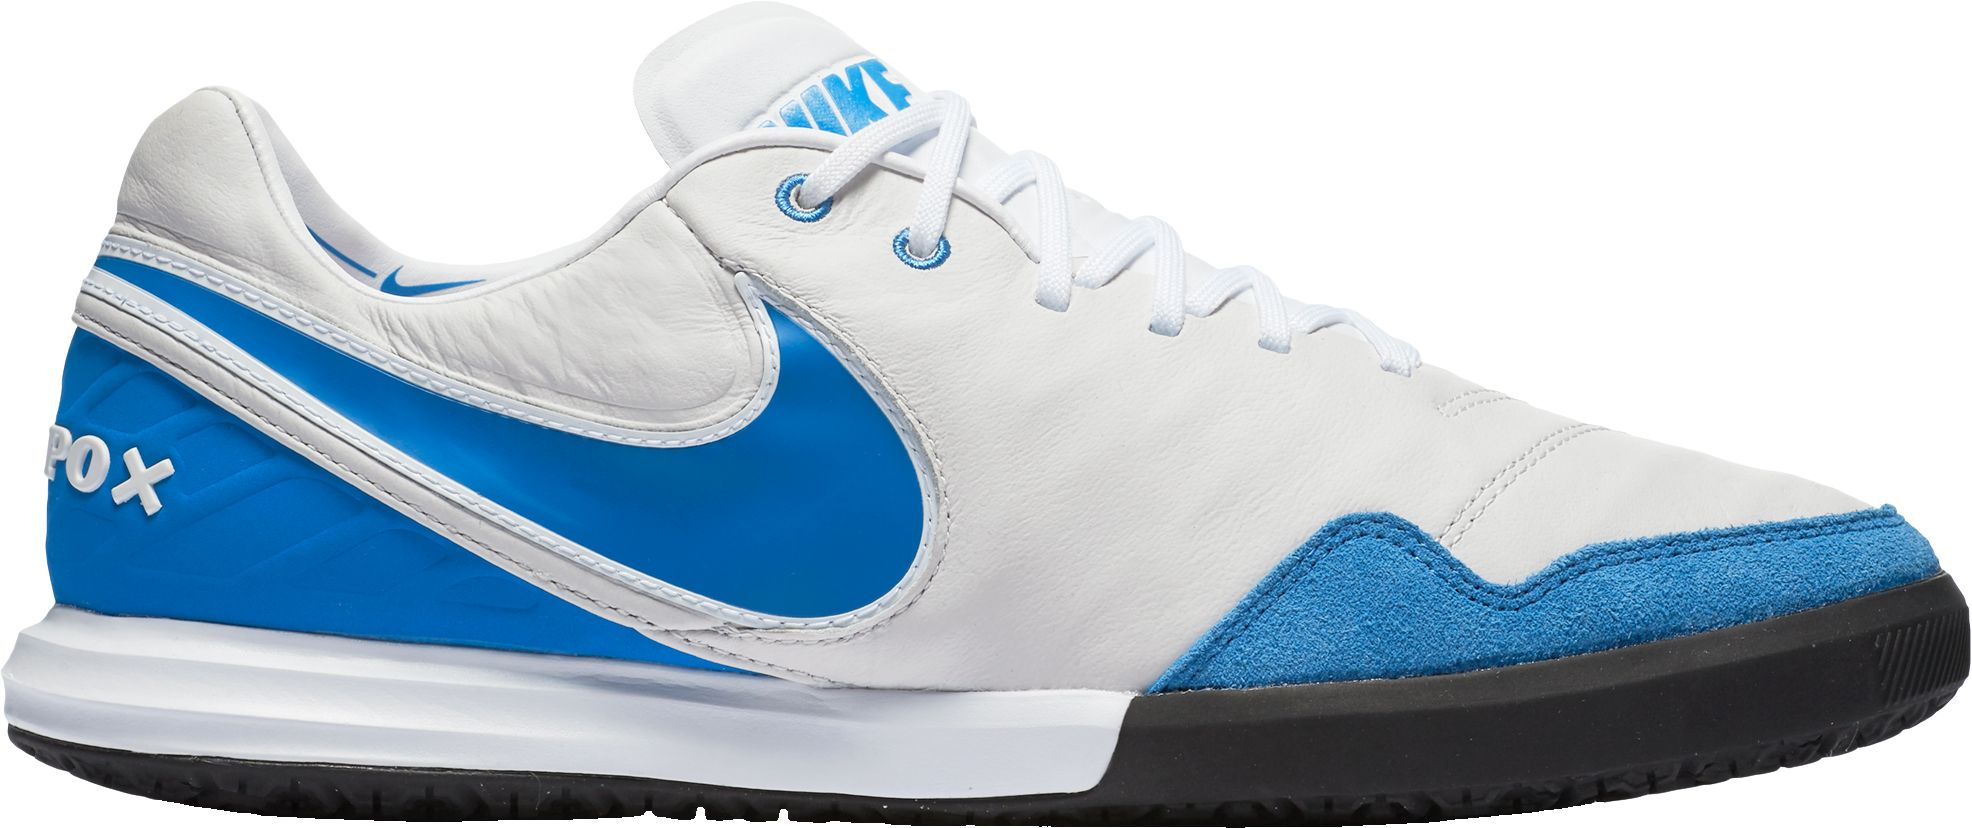 c7e2327c31f62 Product Image · Nike Men's TiempoX Proximo Indoor Soccer Shoes